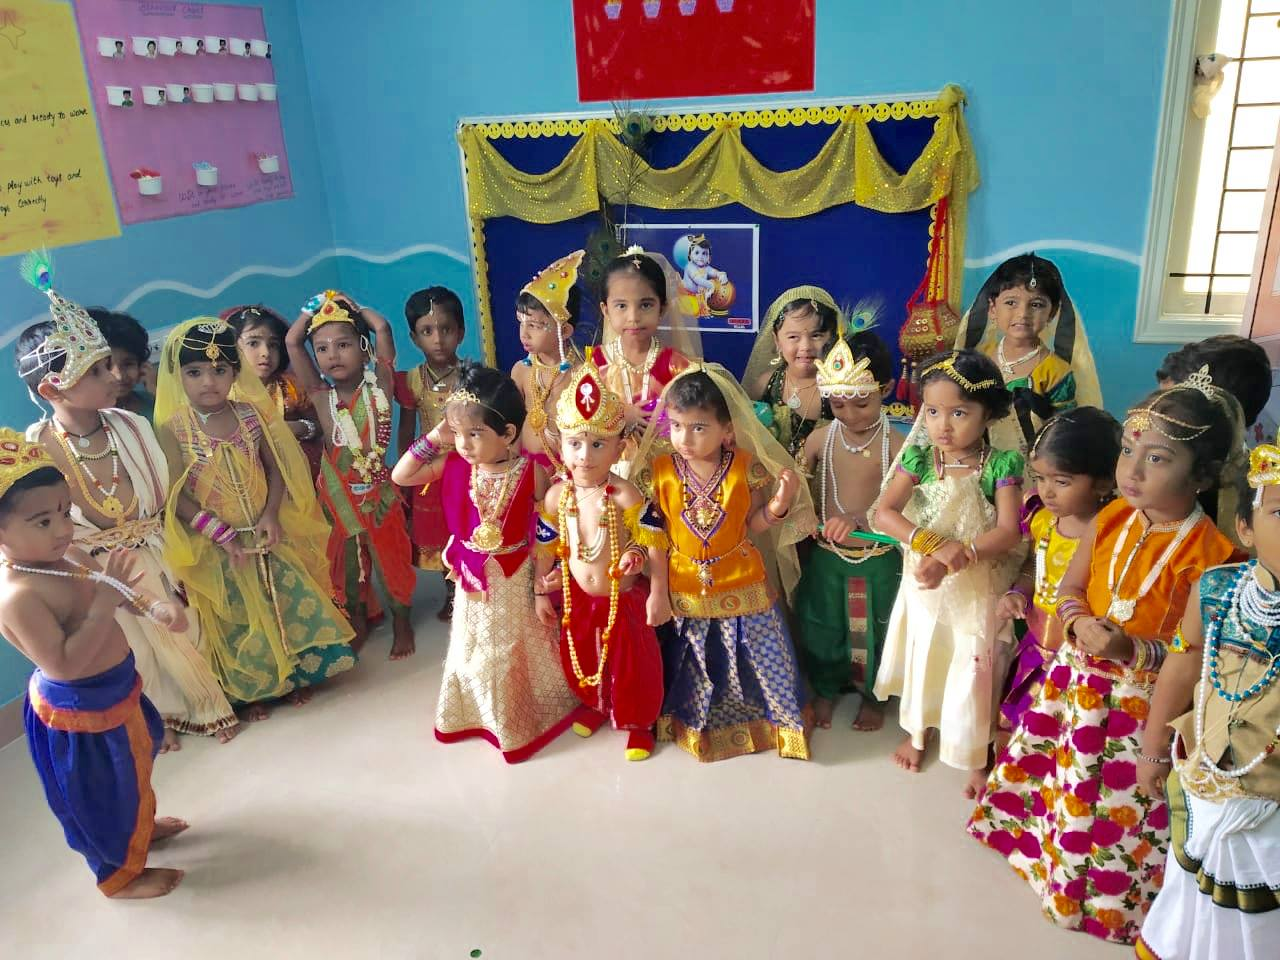 Profitable Big Brand Preschool and Daycare for Sale in Bangalore